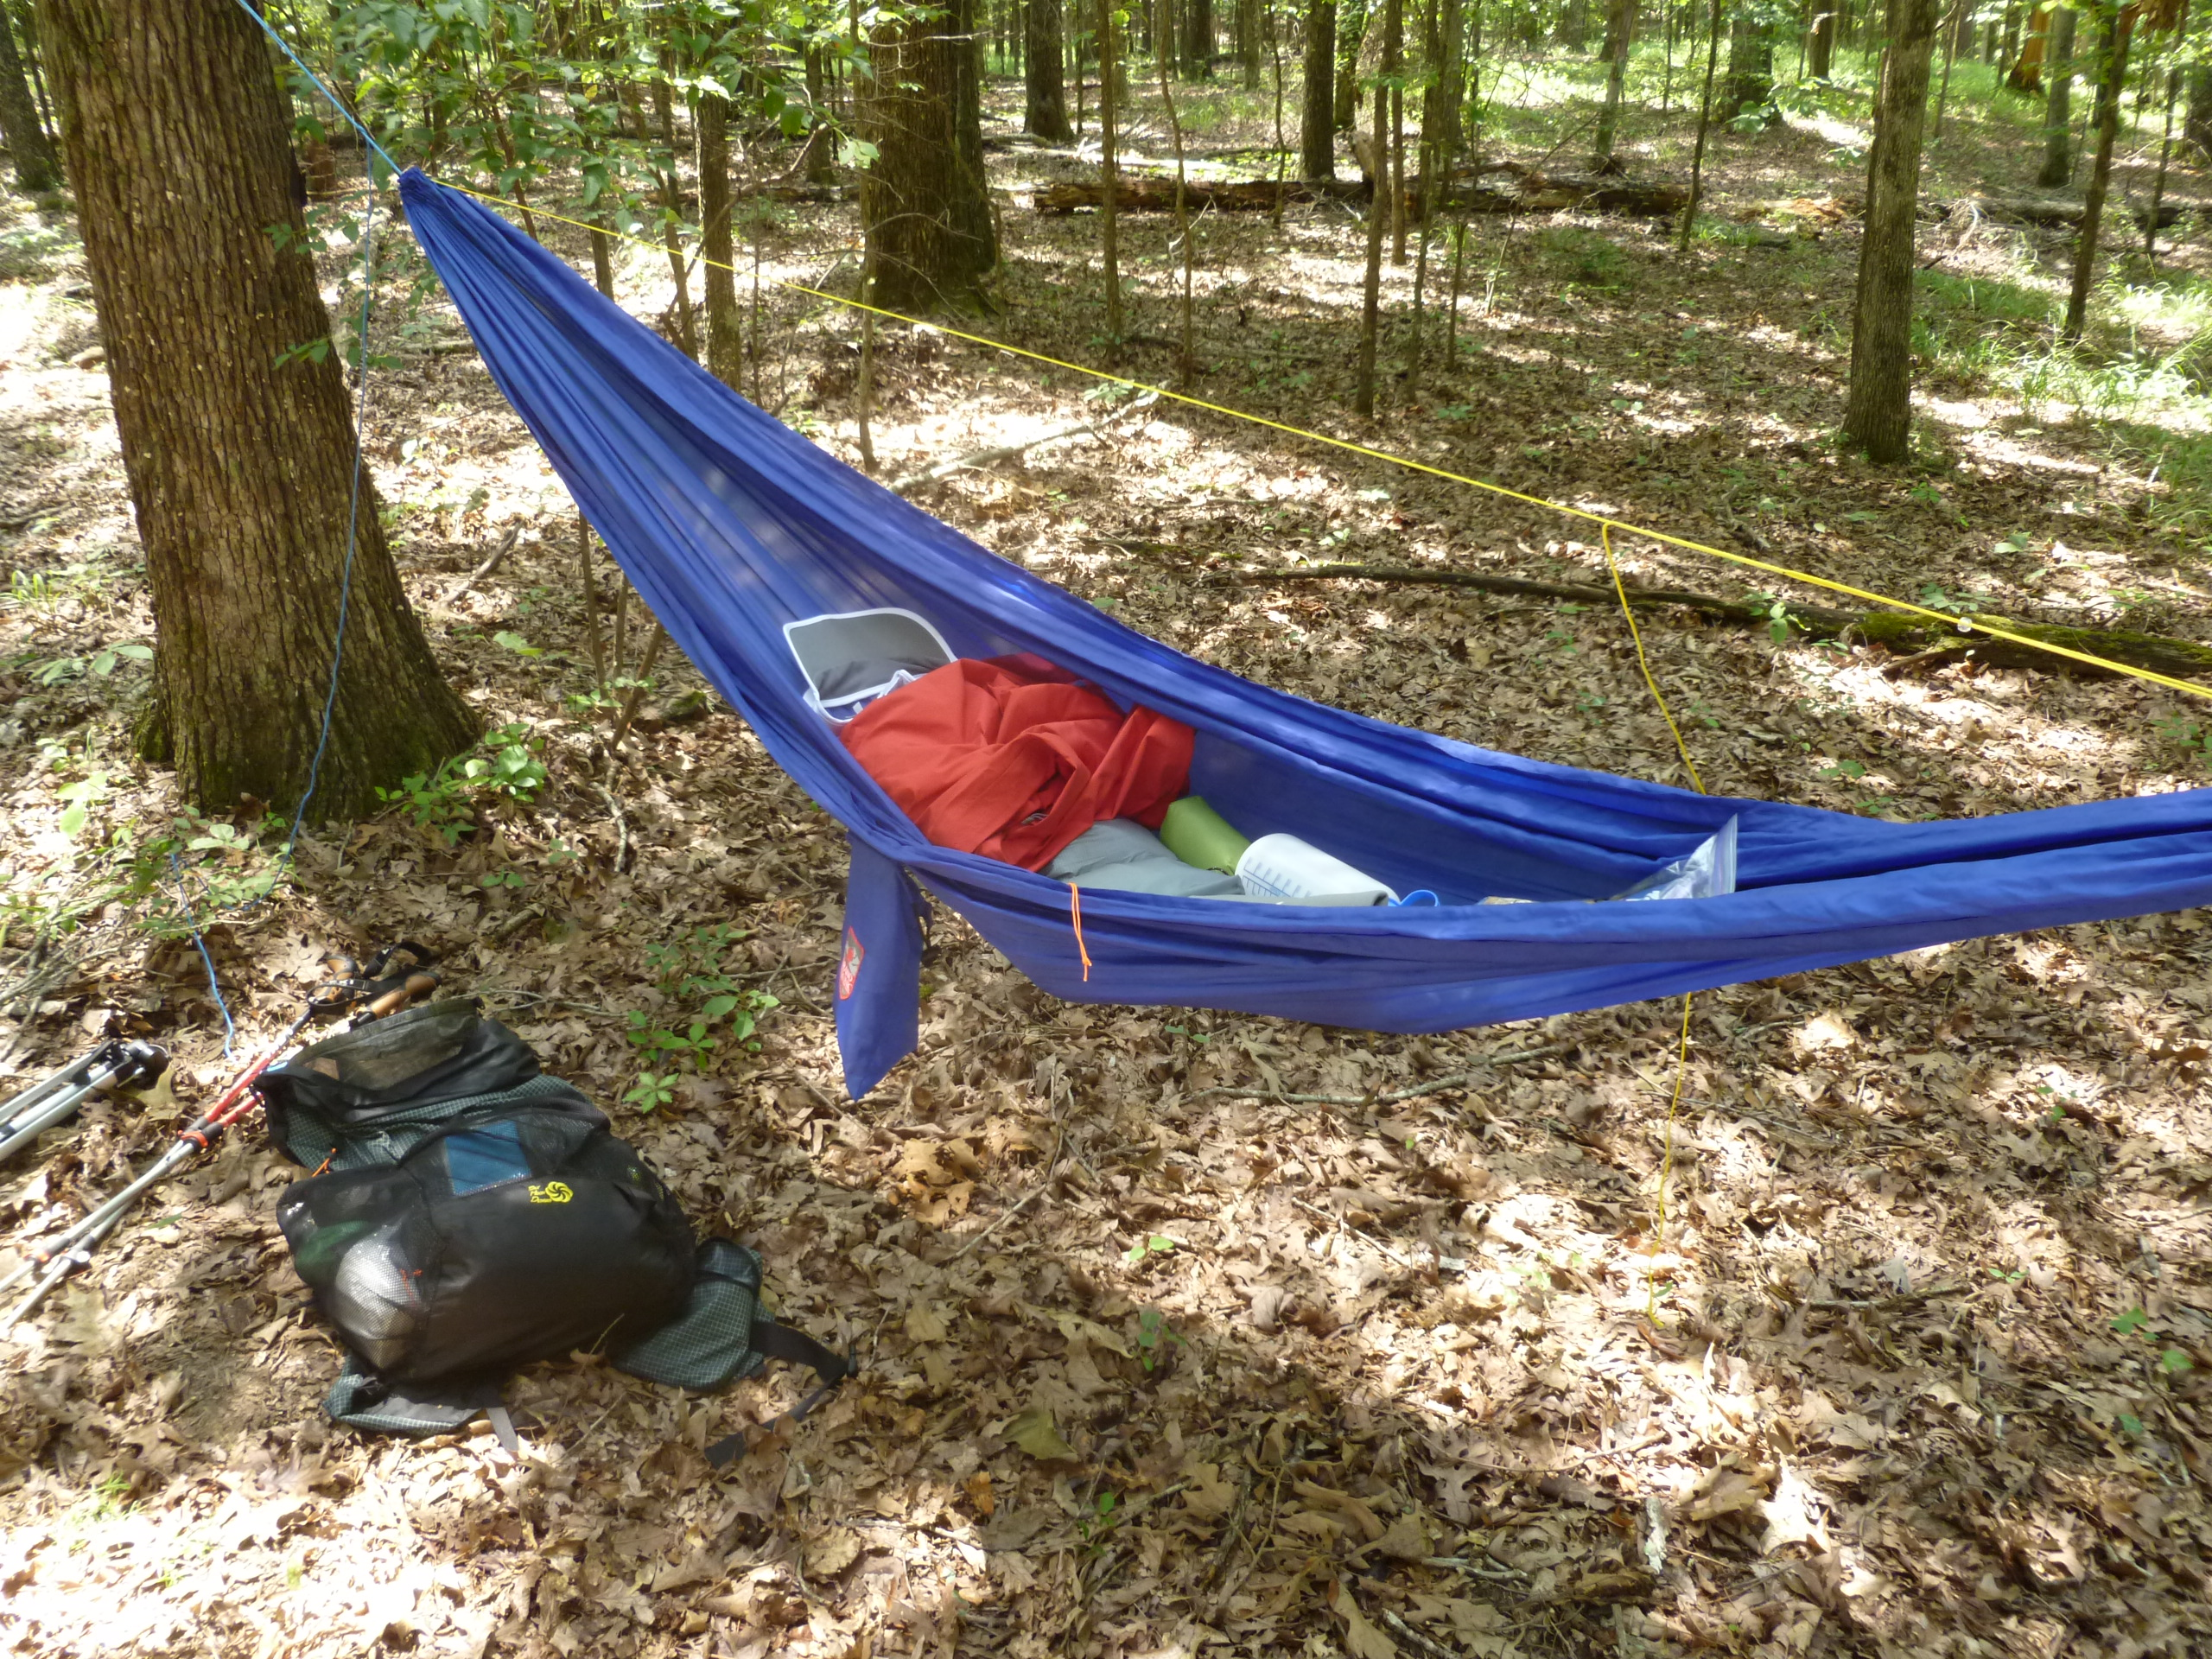 not too long ago i blogged about my new  to me  grand trunk ultralight hammock which i recently received  if you are familiar with that posting     whoopie slings single line tarp ridge lines and bug socks among      rh   sticksblog